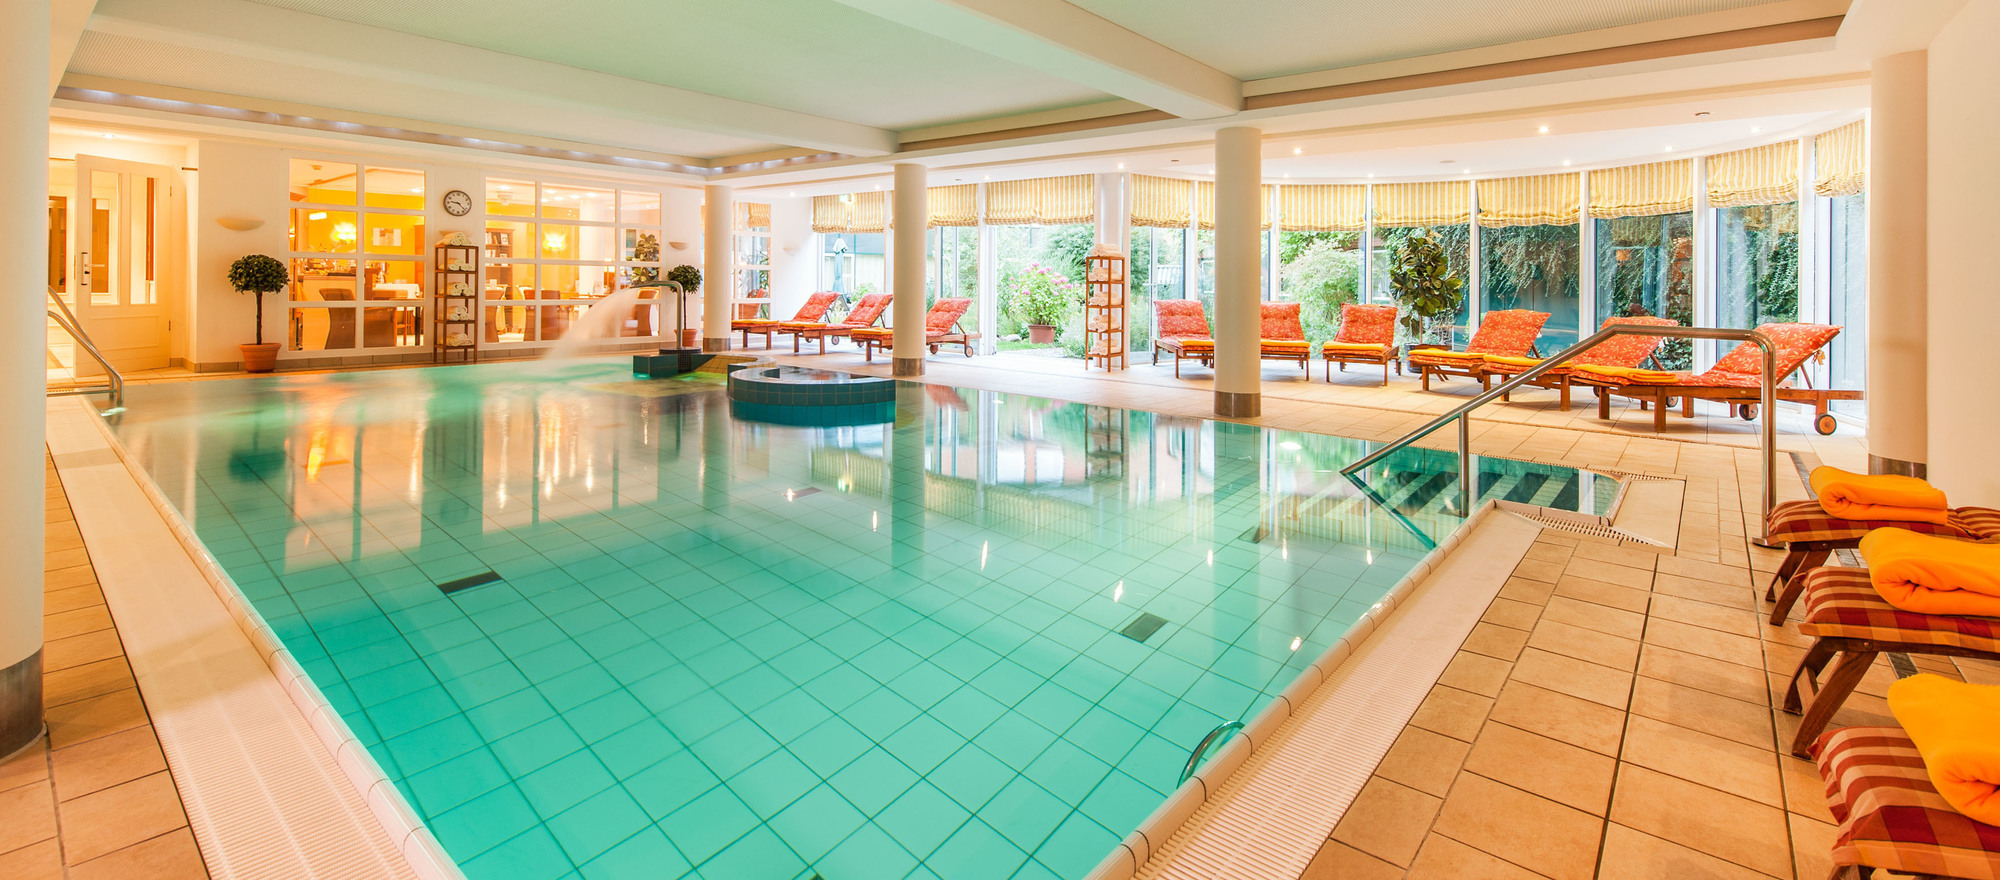 On days where the outside is cold and uncomfortable, the swimming pool's fireplace provides a warm and comforting atmosphere in the 4-star hotel Ringhotel Birke in Kiel